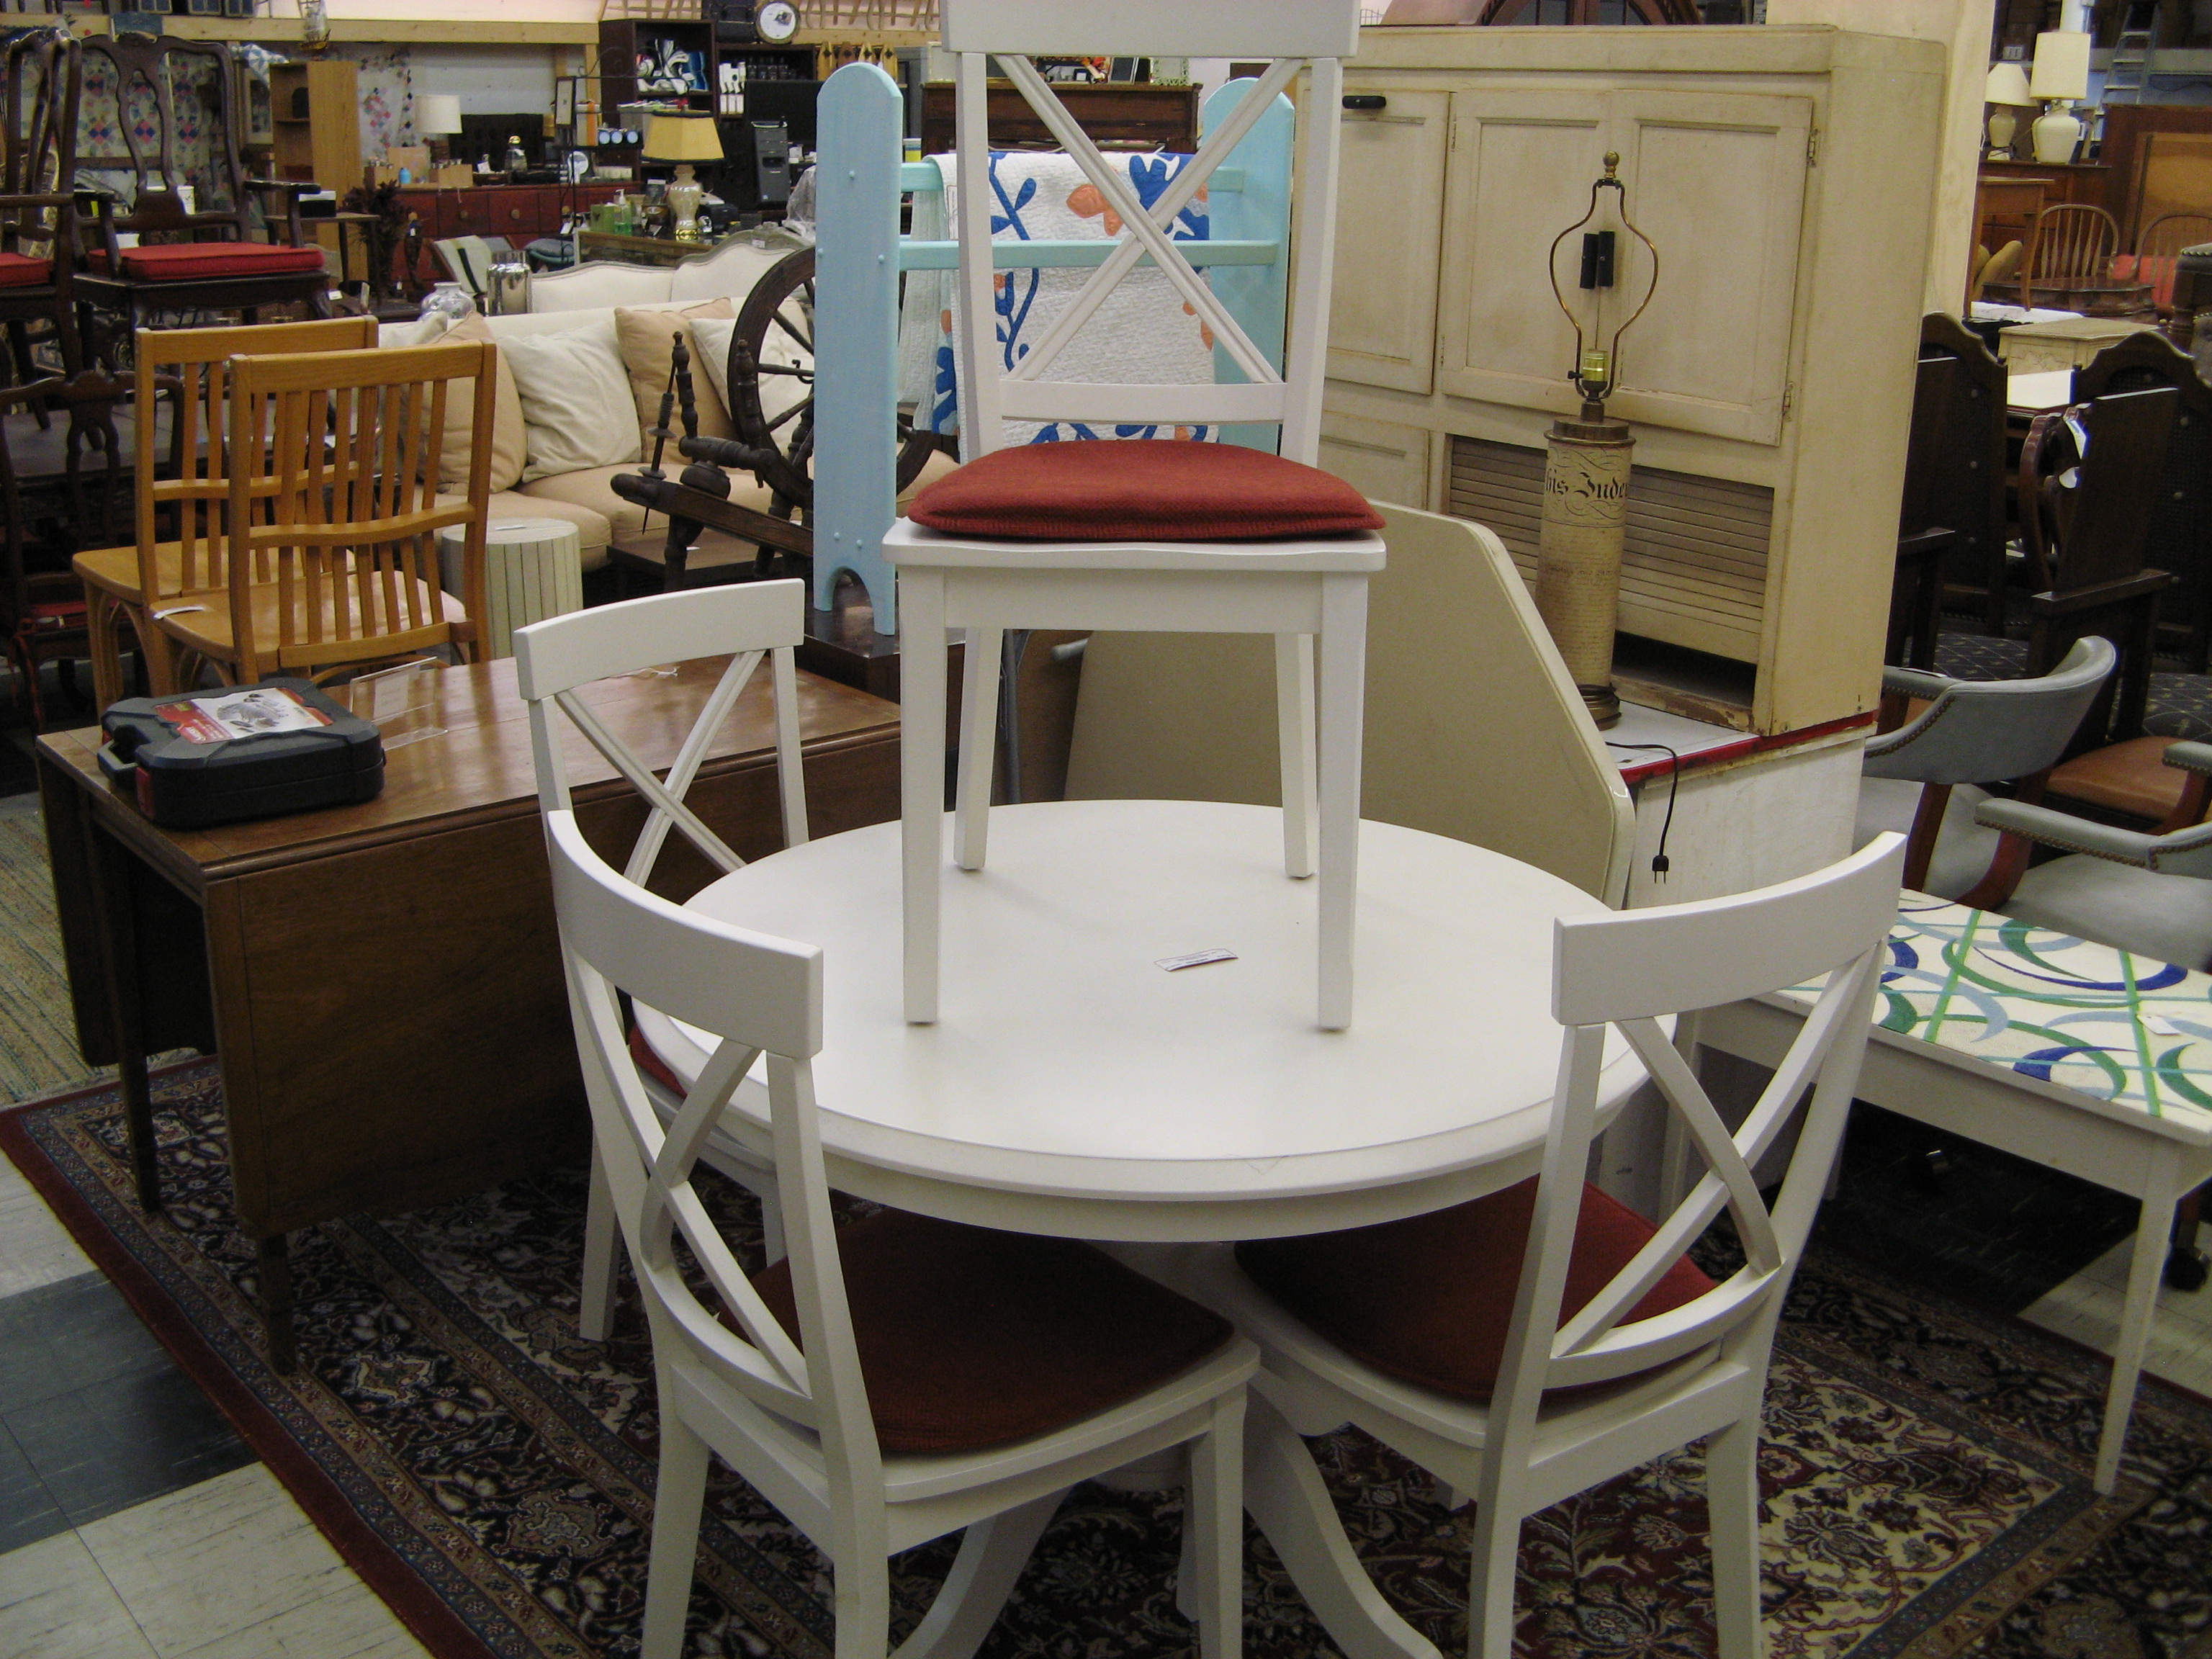 White Round Dining Table w/ 4 Matching Chairs